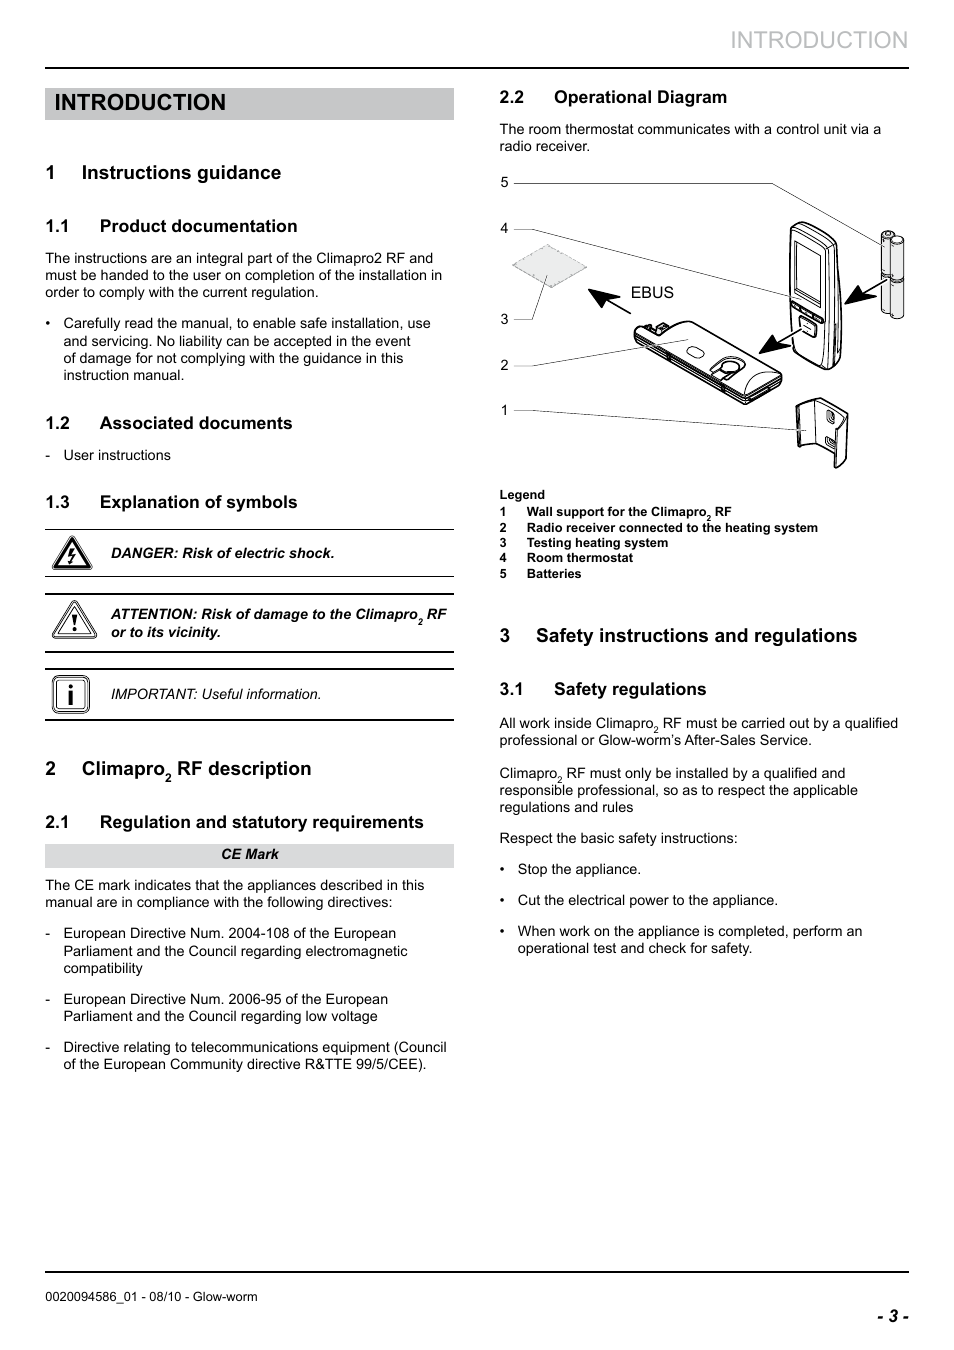 Introduction, 1 instructions guidance, 2 climapro | Glow-worm ...